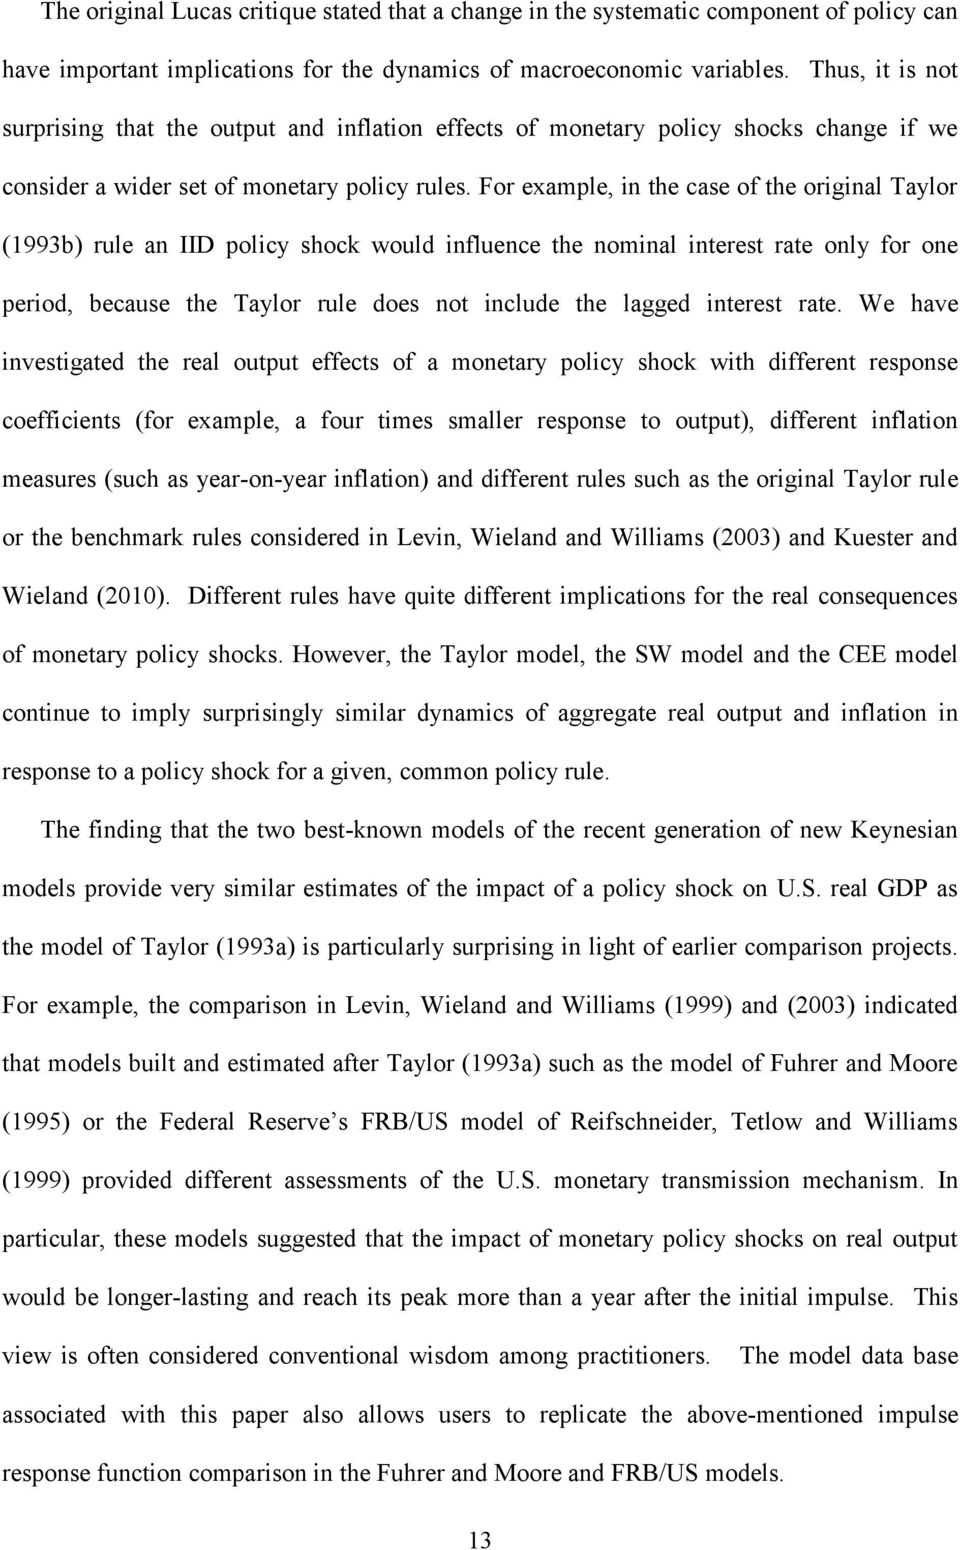 For example, in the case of the original Taylor (1993b) rule an IID policy shock would influence the nominal interest rate only for one period, because the Taylor rule does not include the lagged